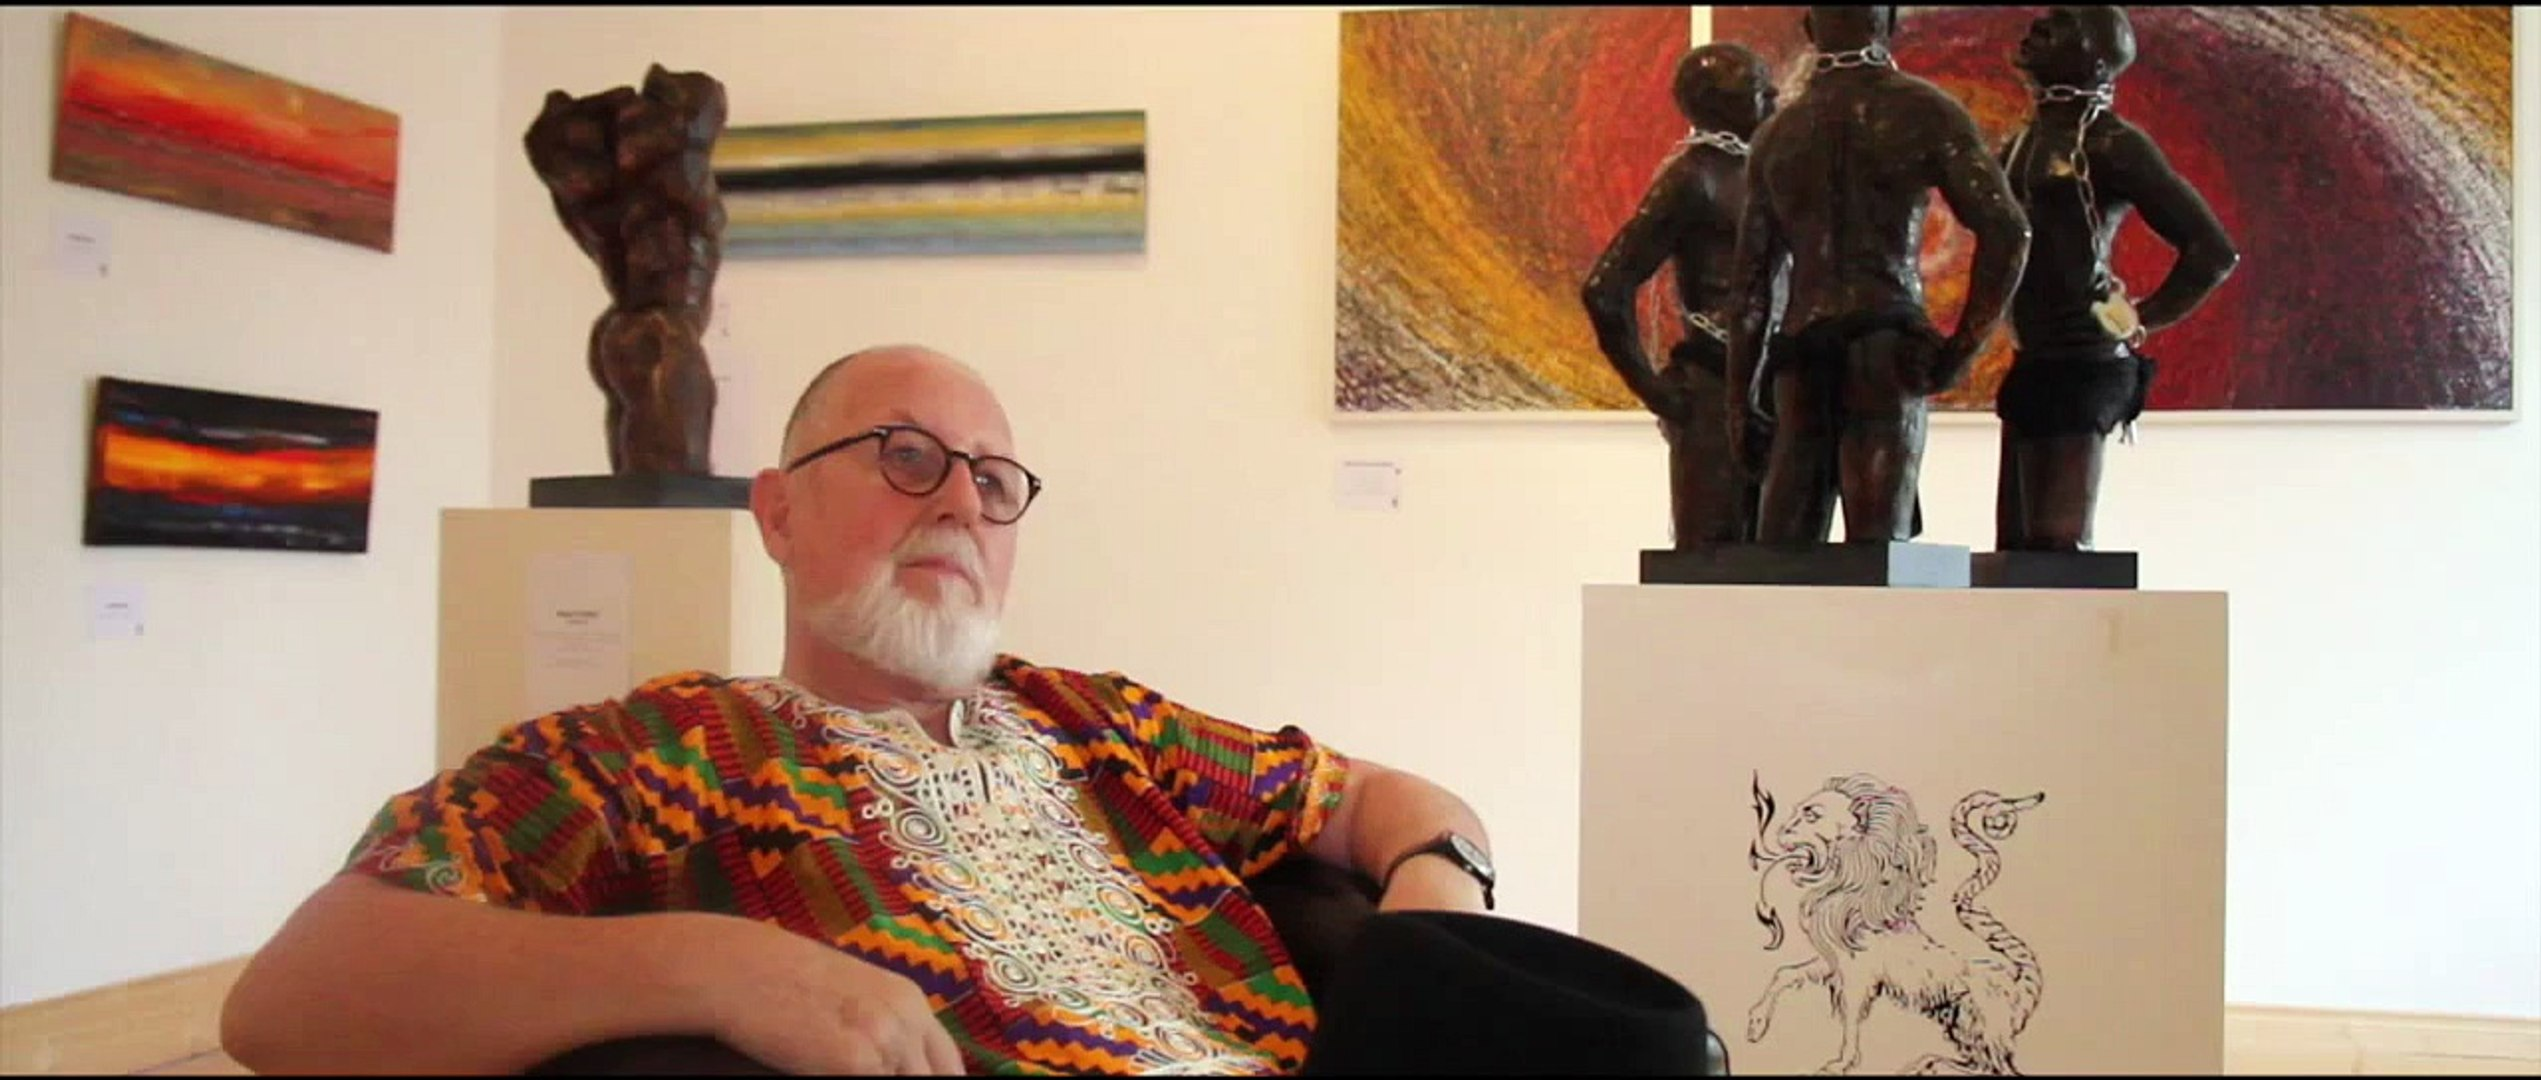 Dave OShea interviewing Gerry days after the Image & Likeness Exhibition by Gerry Waldron